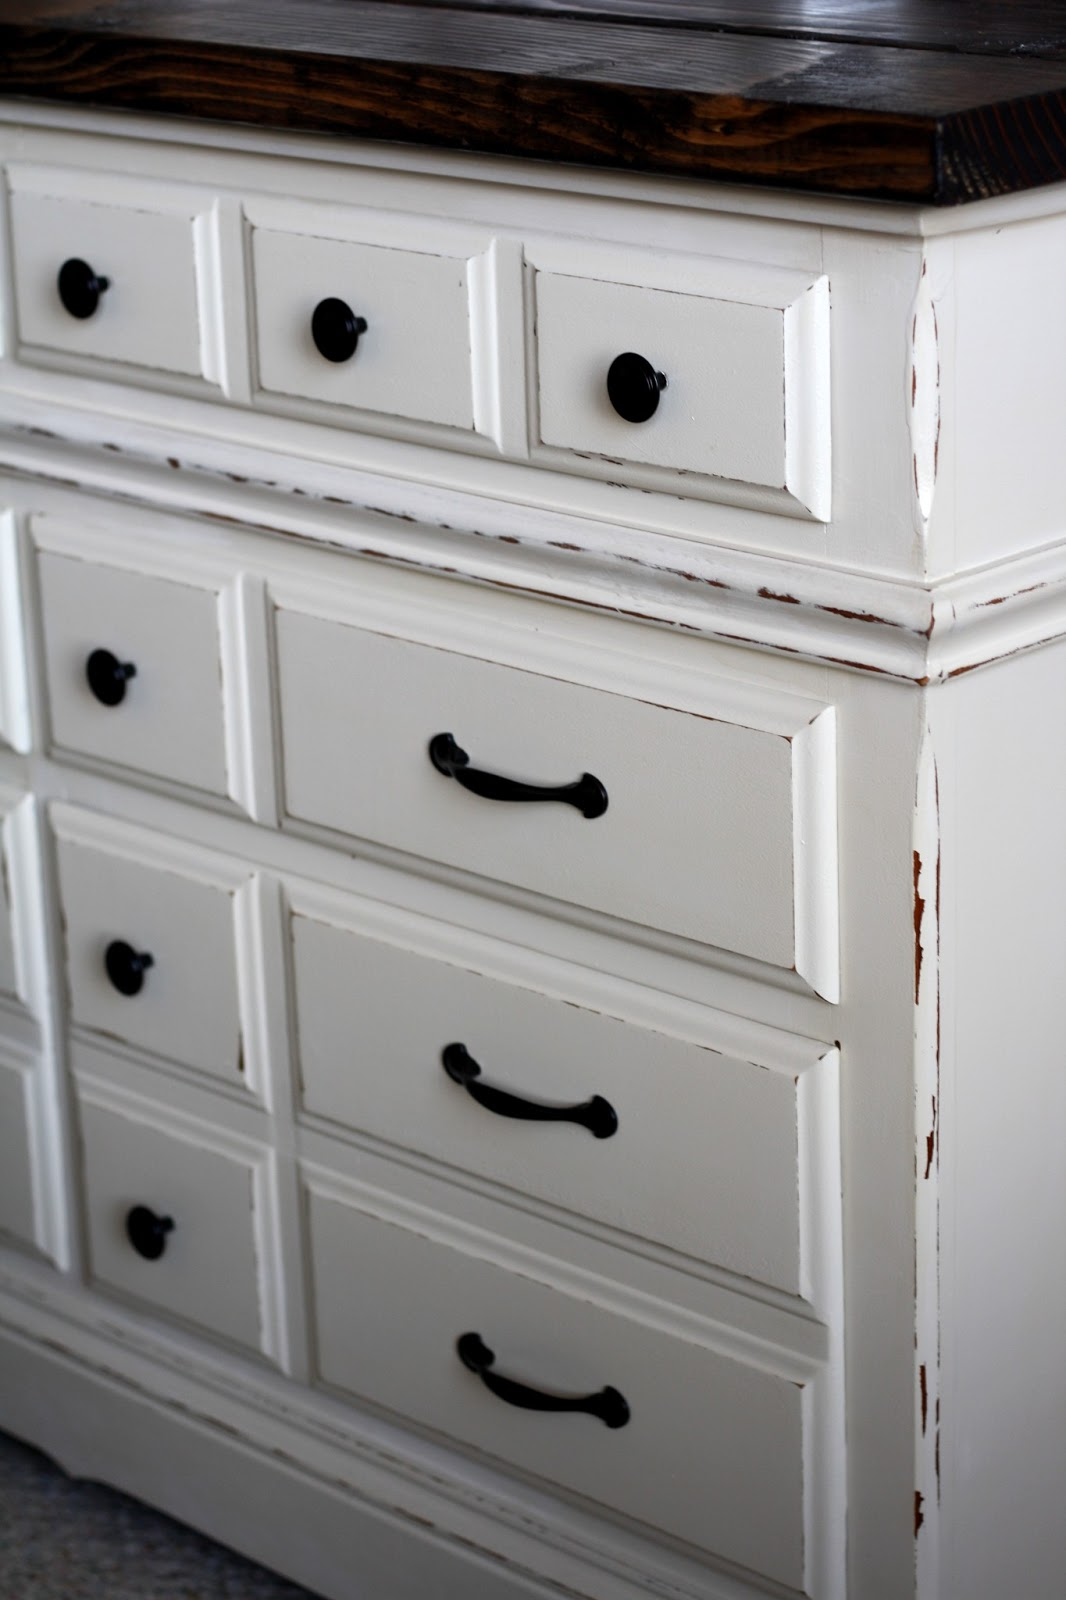 Relatively the semi-frugal life: diy dresser with rustic wooden top AM15